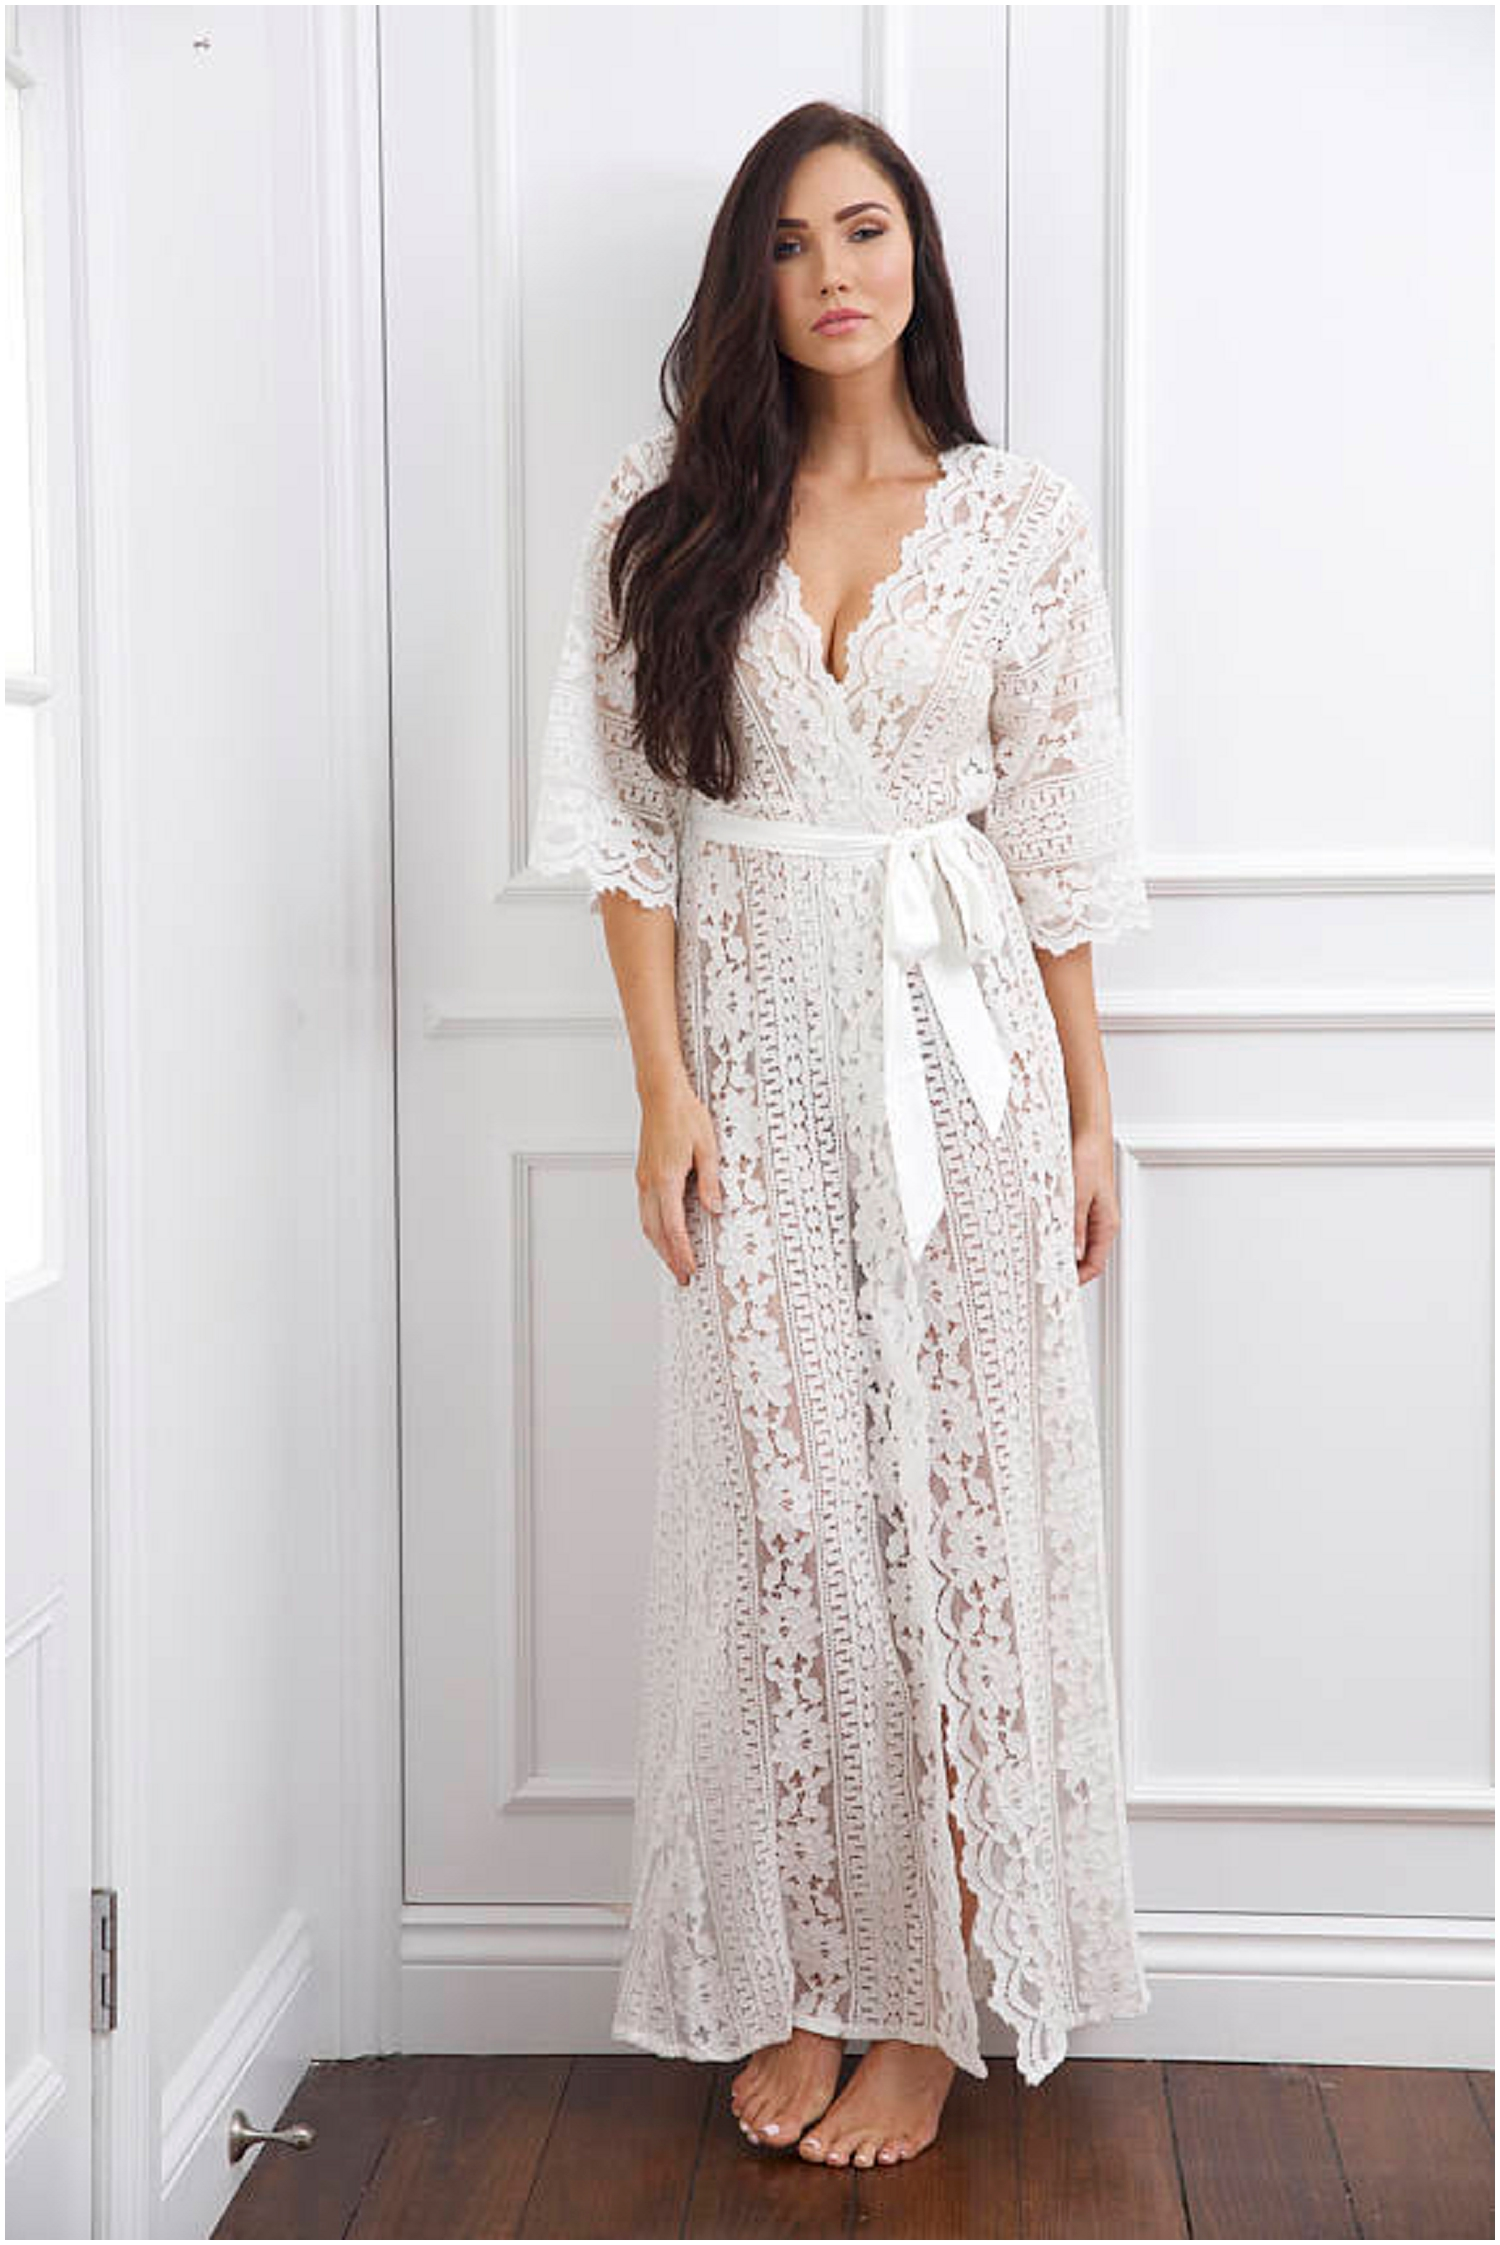 ALL. THE. LACE. Oh my gosh, I want this for myself!